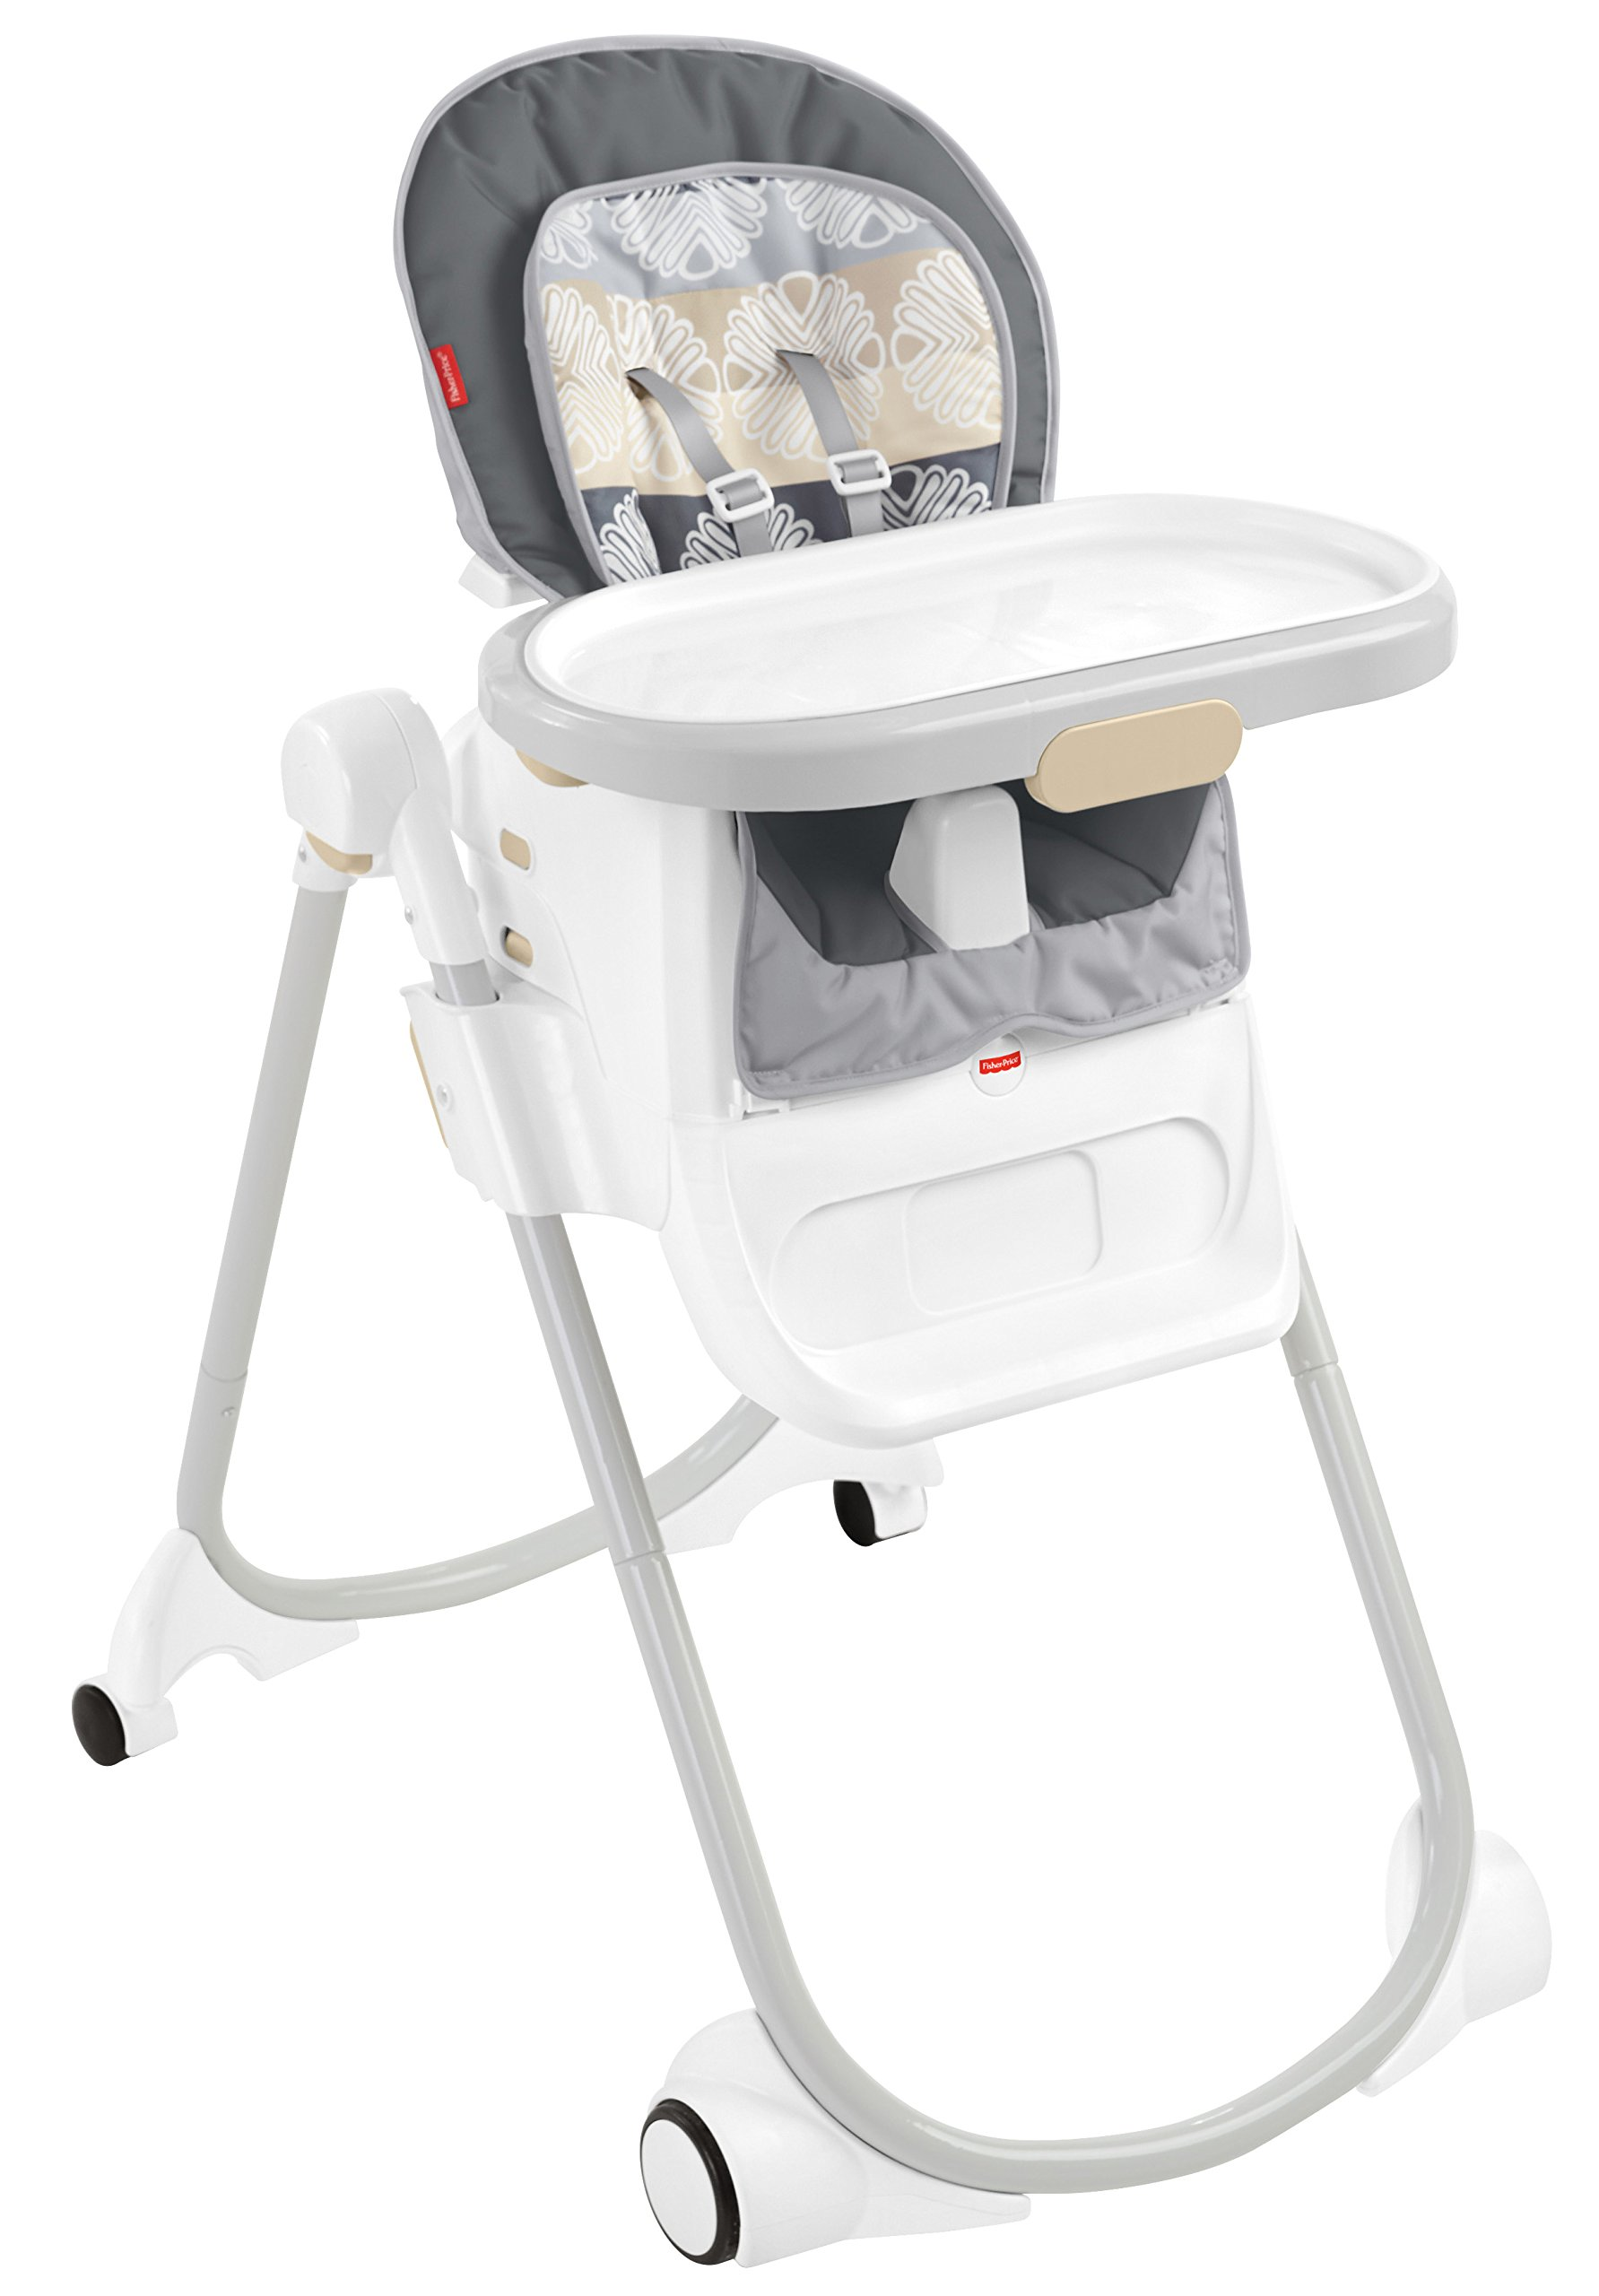 Fisher-Price 4-in-1 Total Clean High Chair, White/Grey, One size